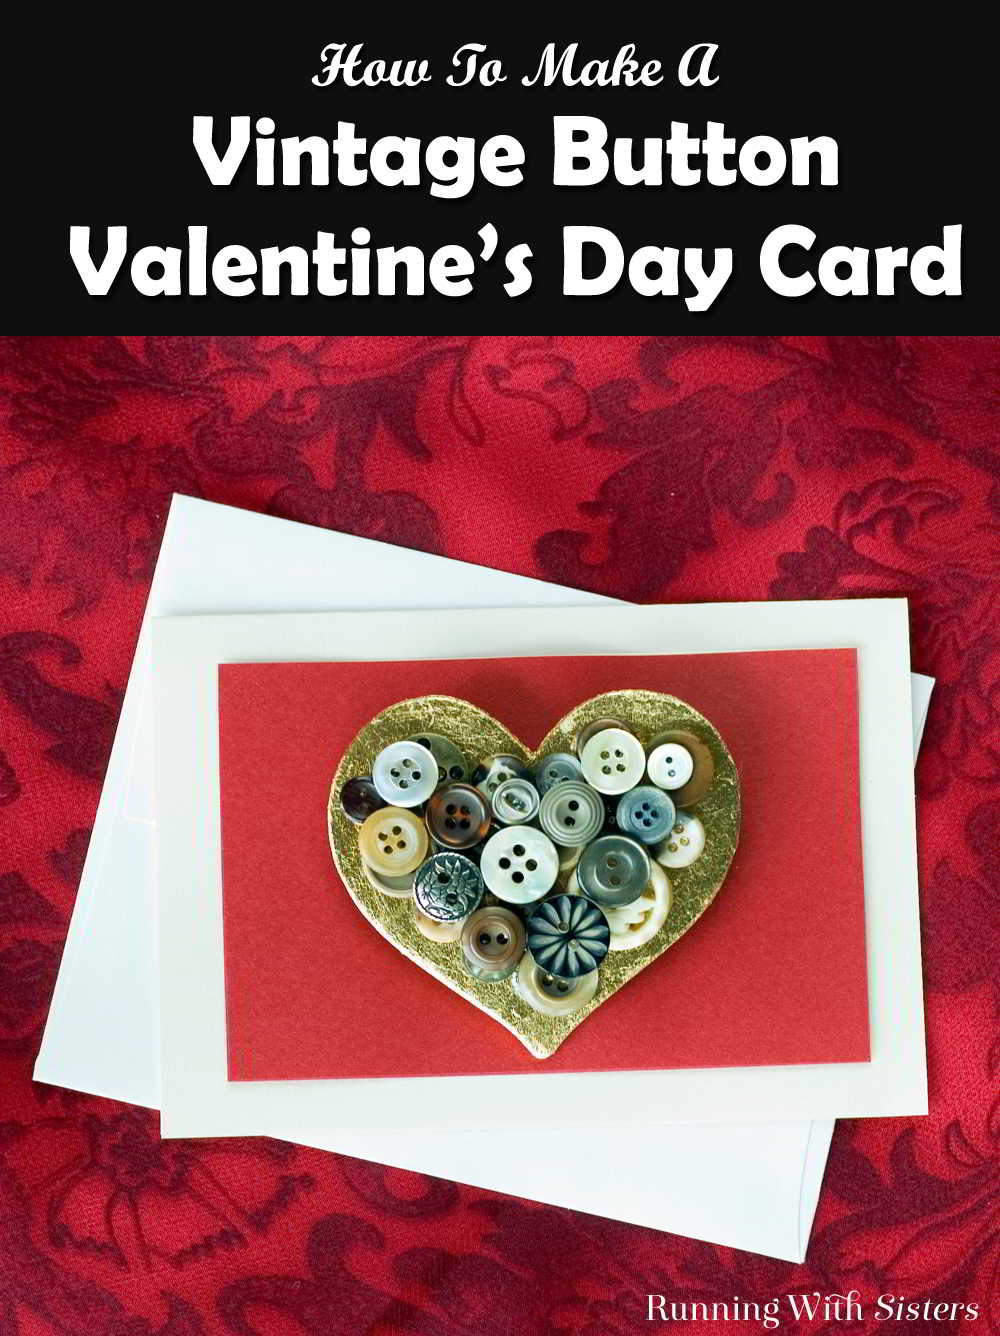 Make a Vintage Button Valentine's Day Card using old buttons, a craft heart, and gold leaf. Add a pin back so your Valentine can keep the button heart!